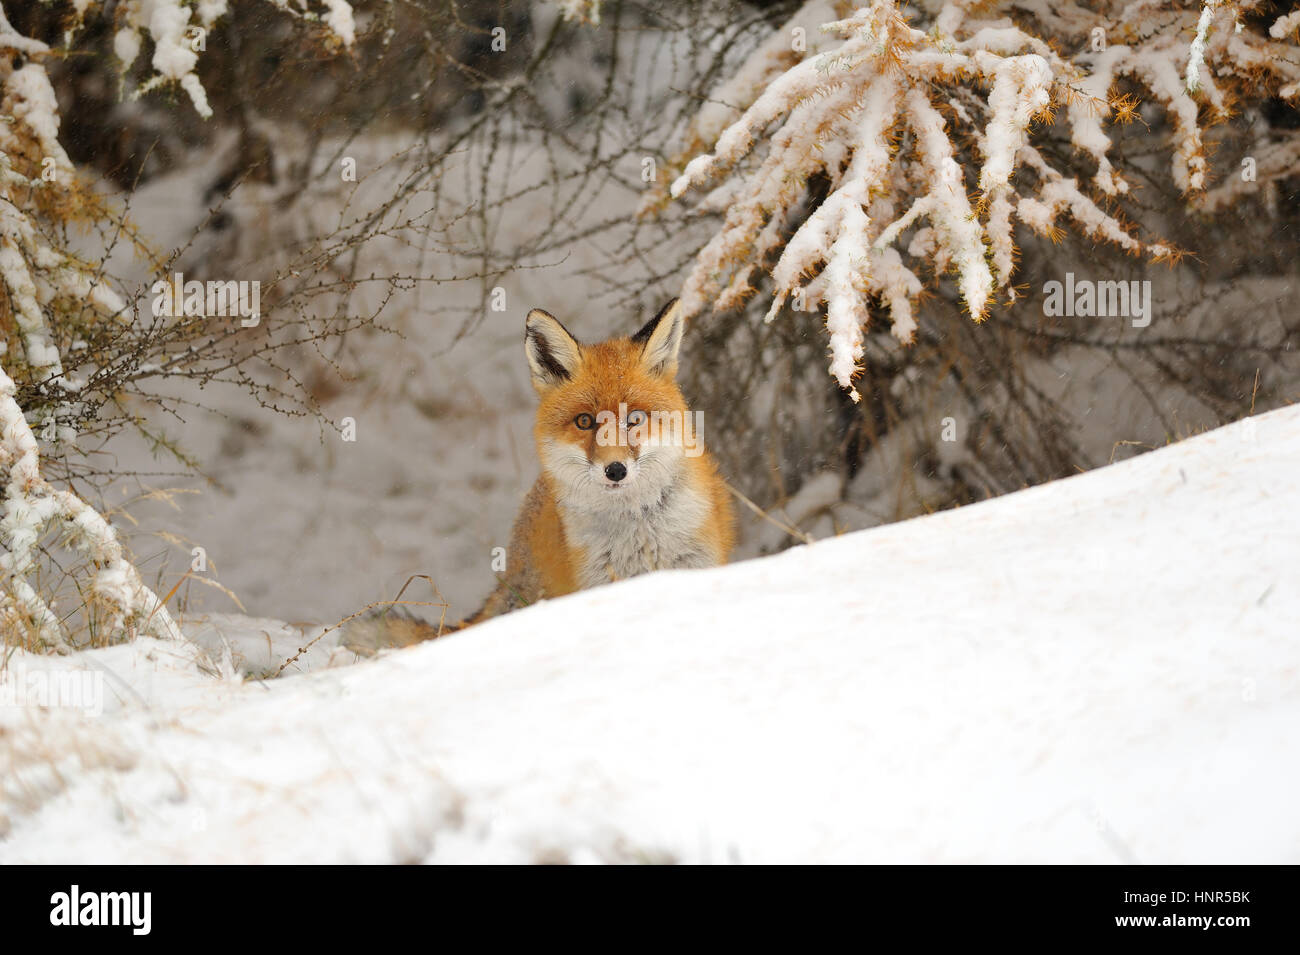 Red fox in the winter on snowy ground bellow larch - Stock Image